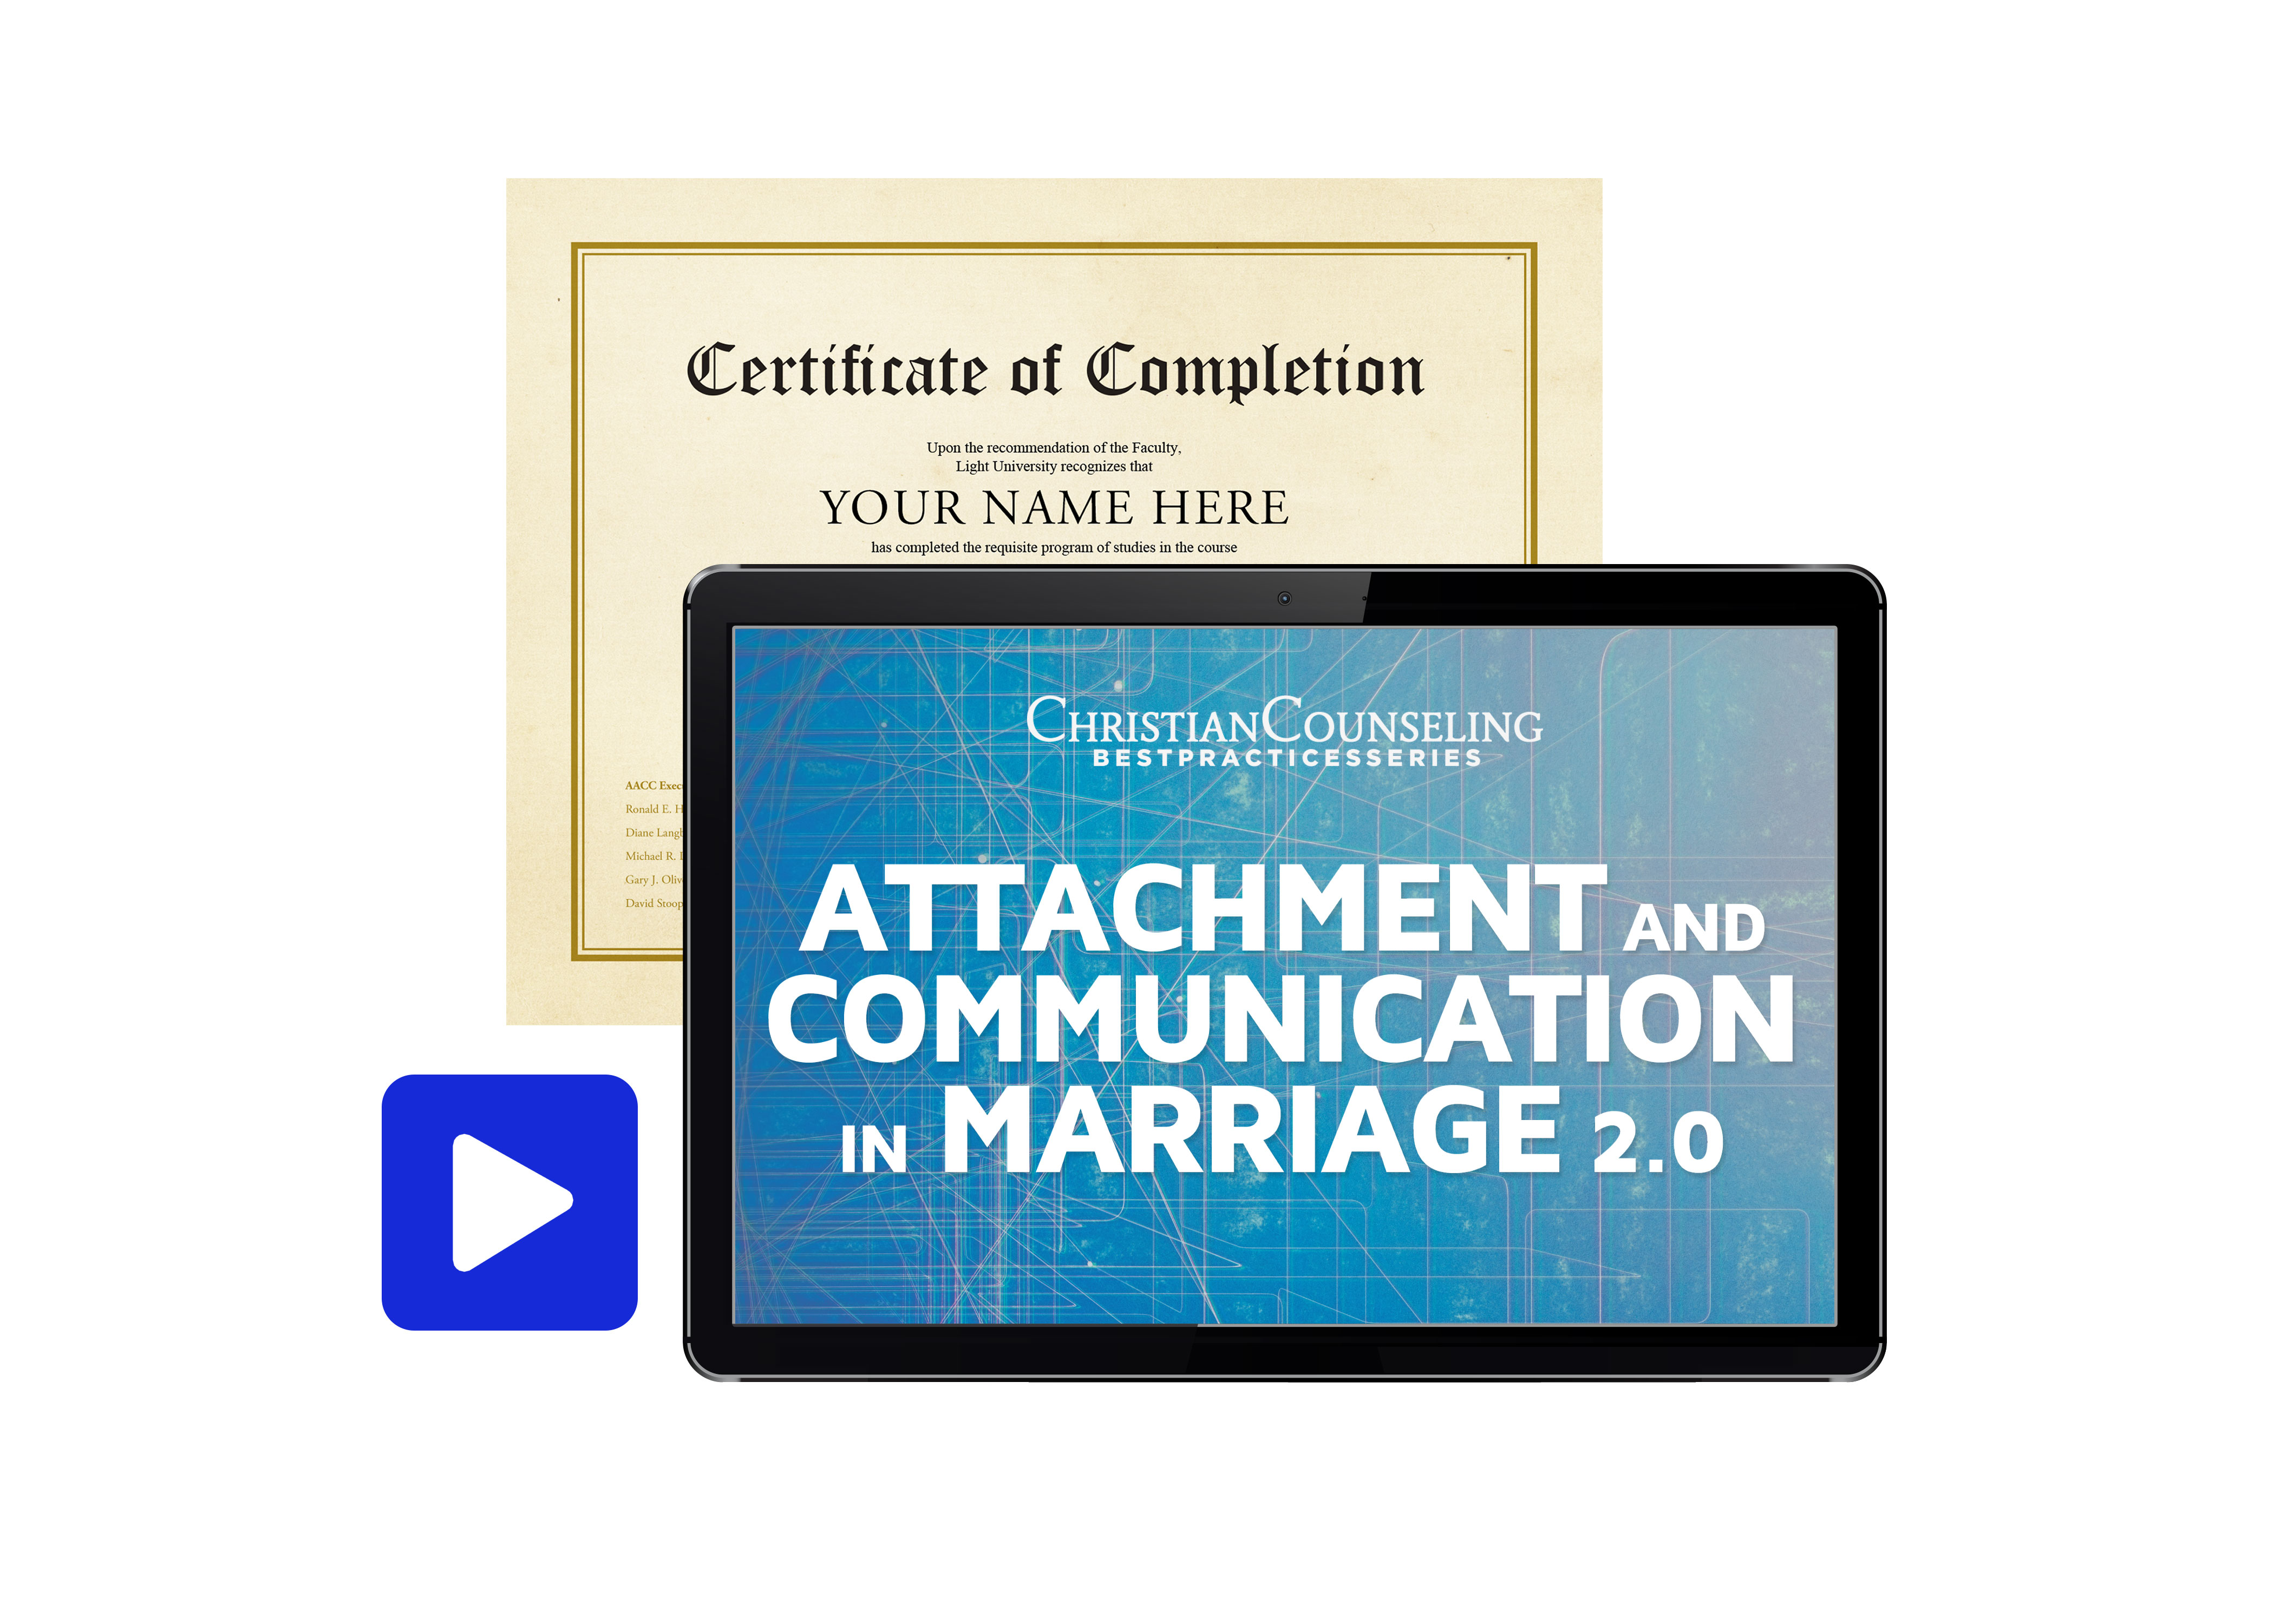 Attachment and Communication in Marriage 2.0